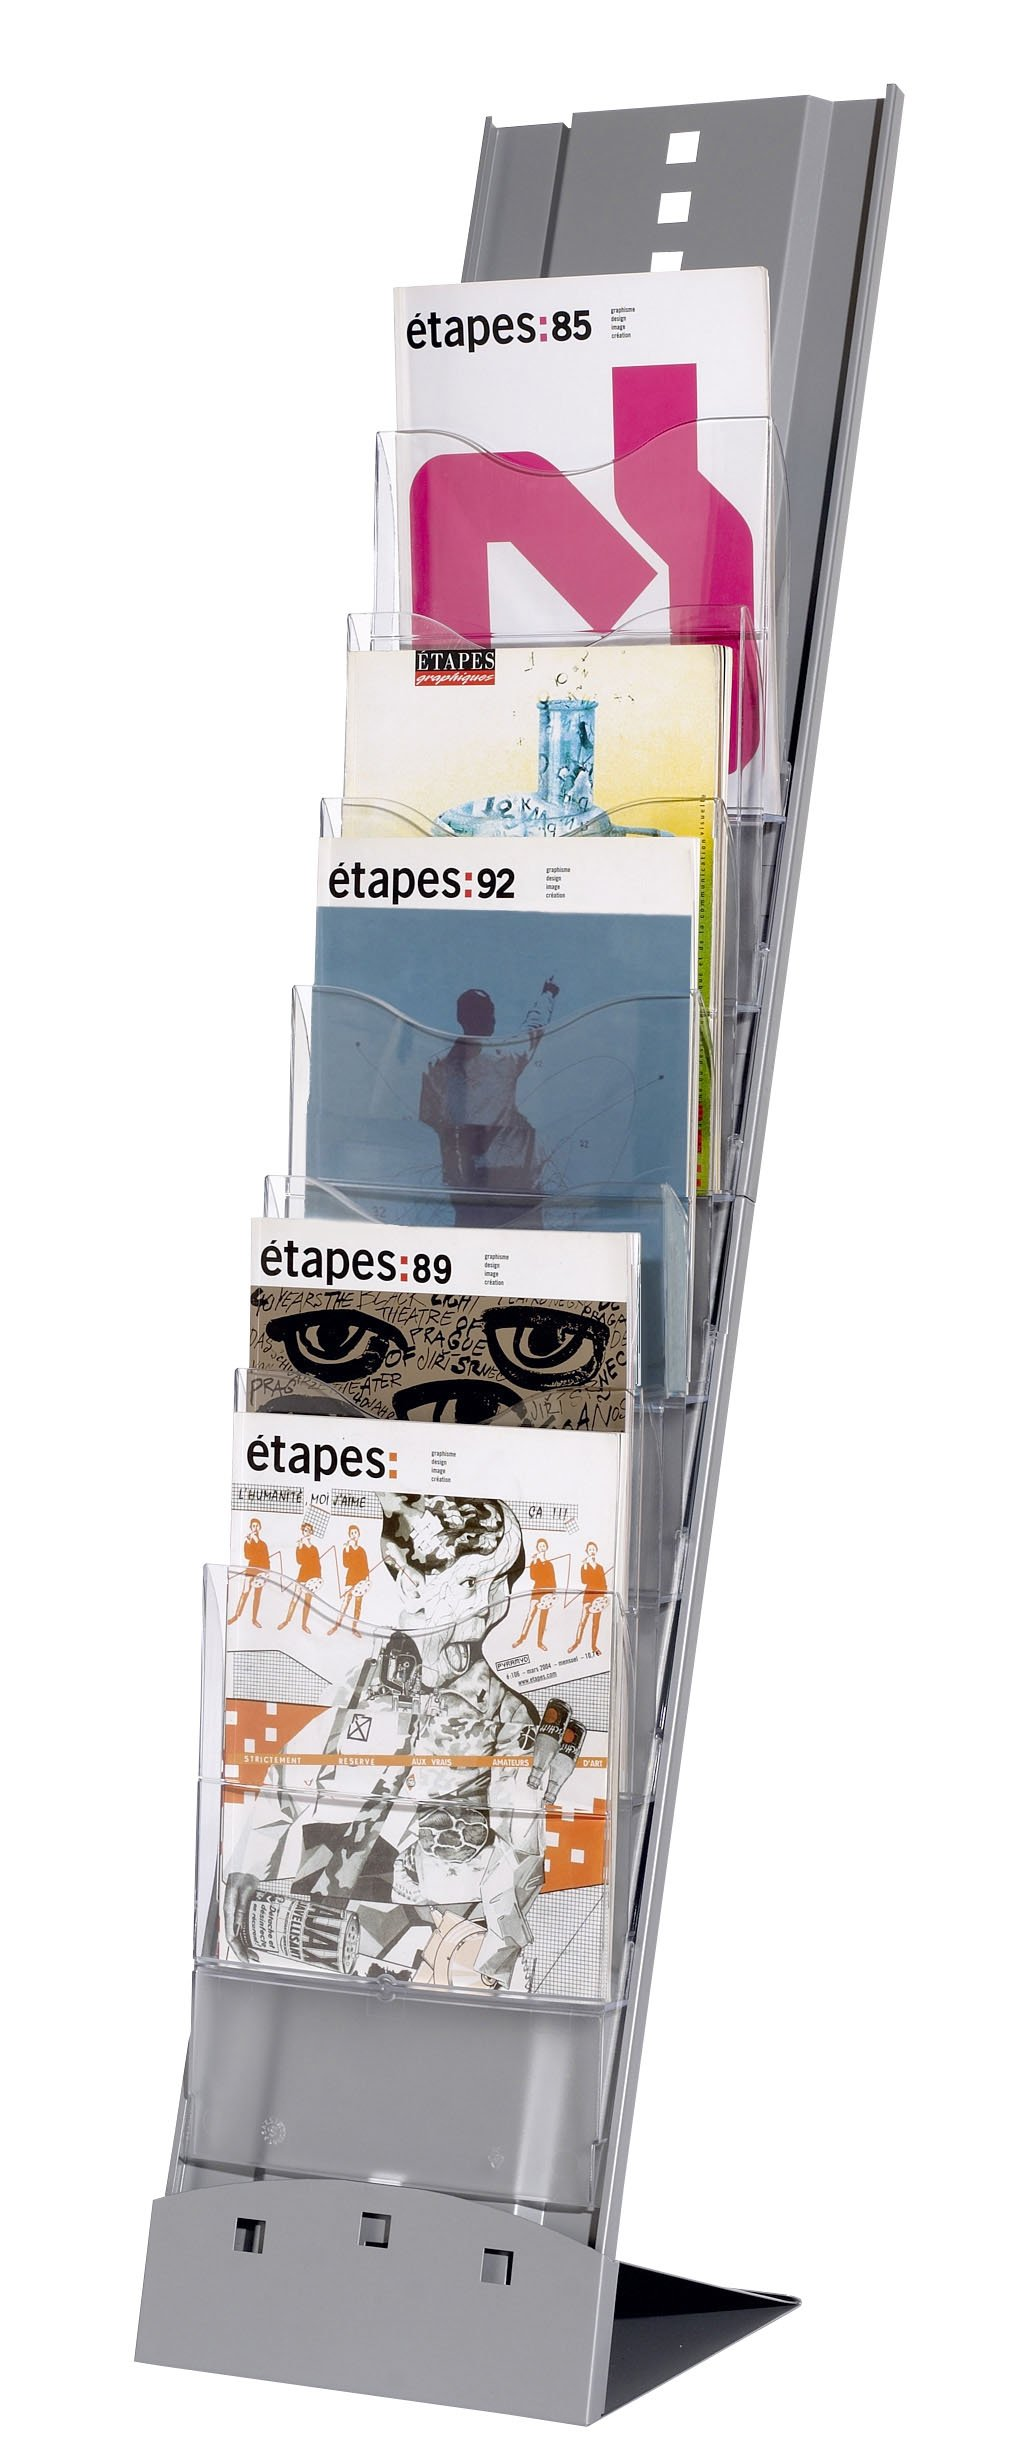 Paperflow Portable 7-Compartment Floor Literature Display Rack, 45.29 x 9.83 x 14.17 Inches, Silver (2857.35)